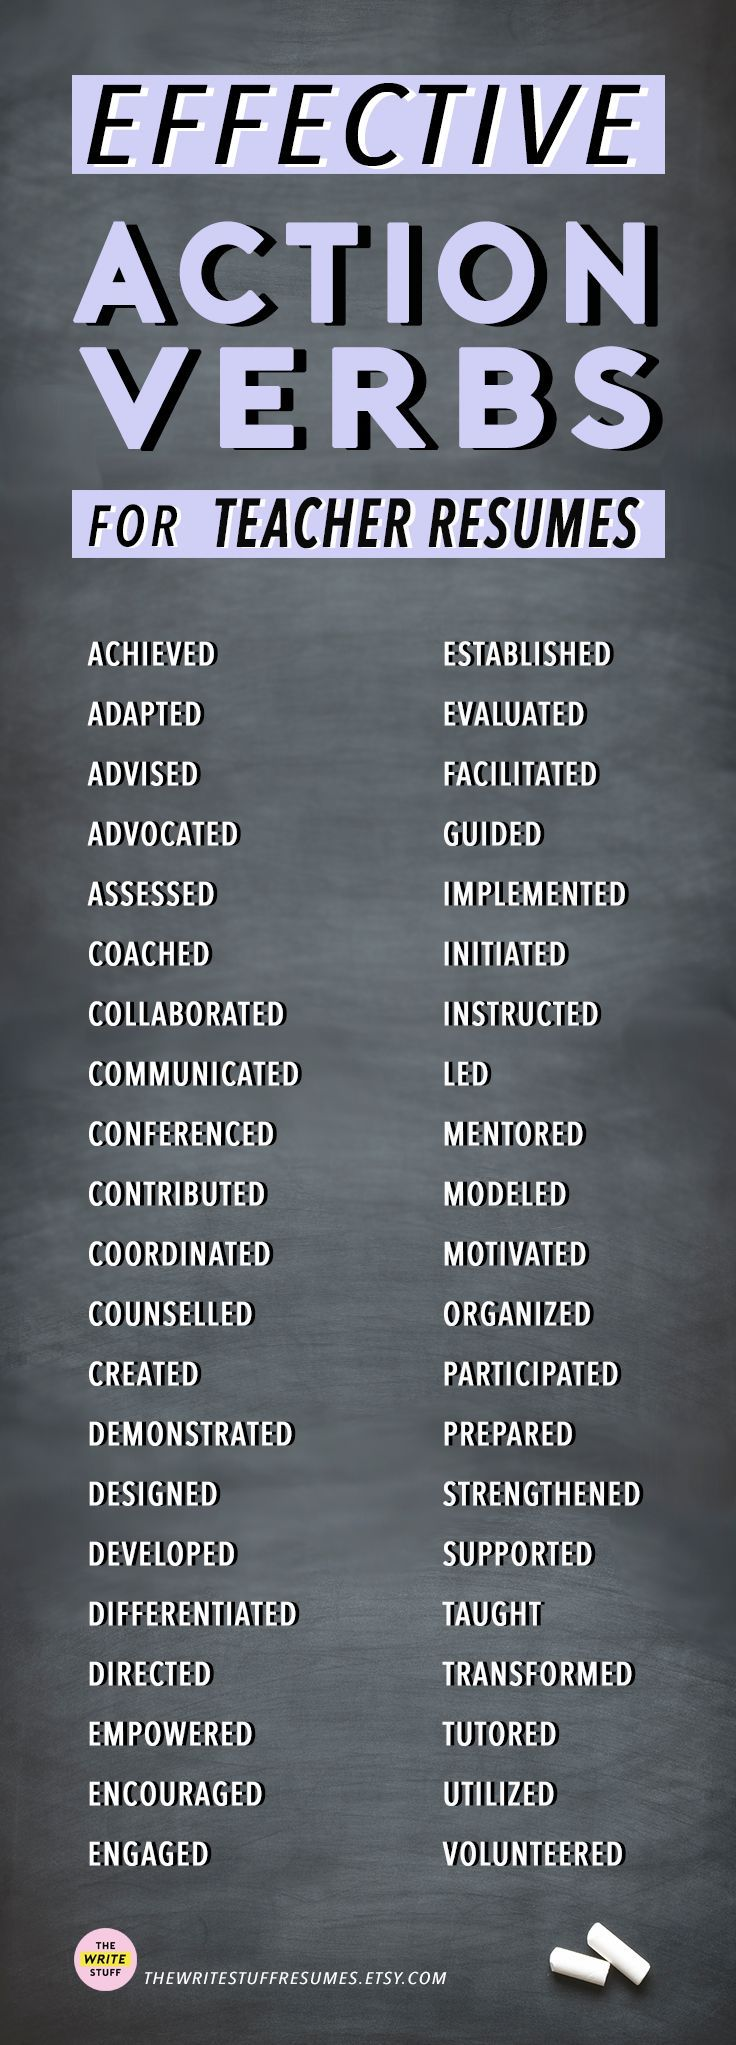 Resume Action Verbs For Teachers